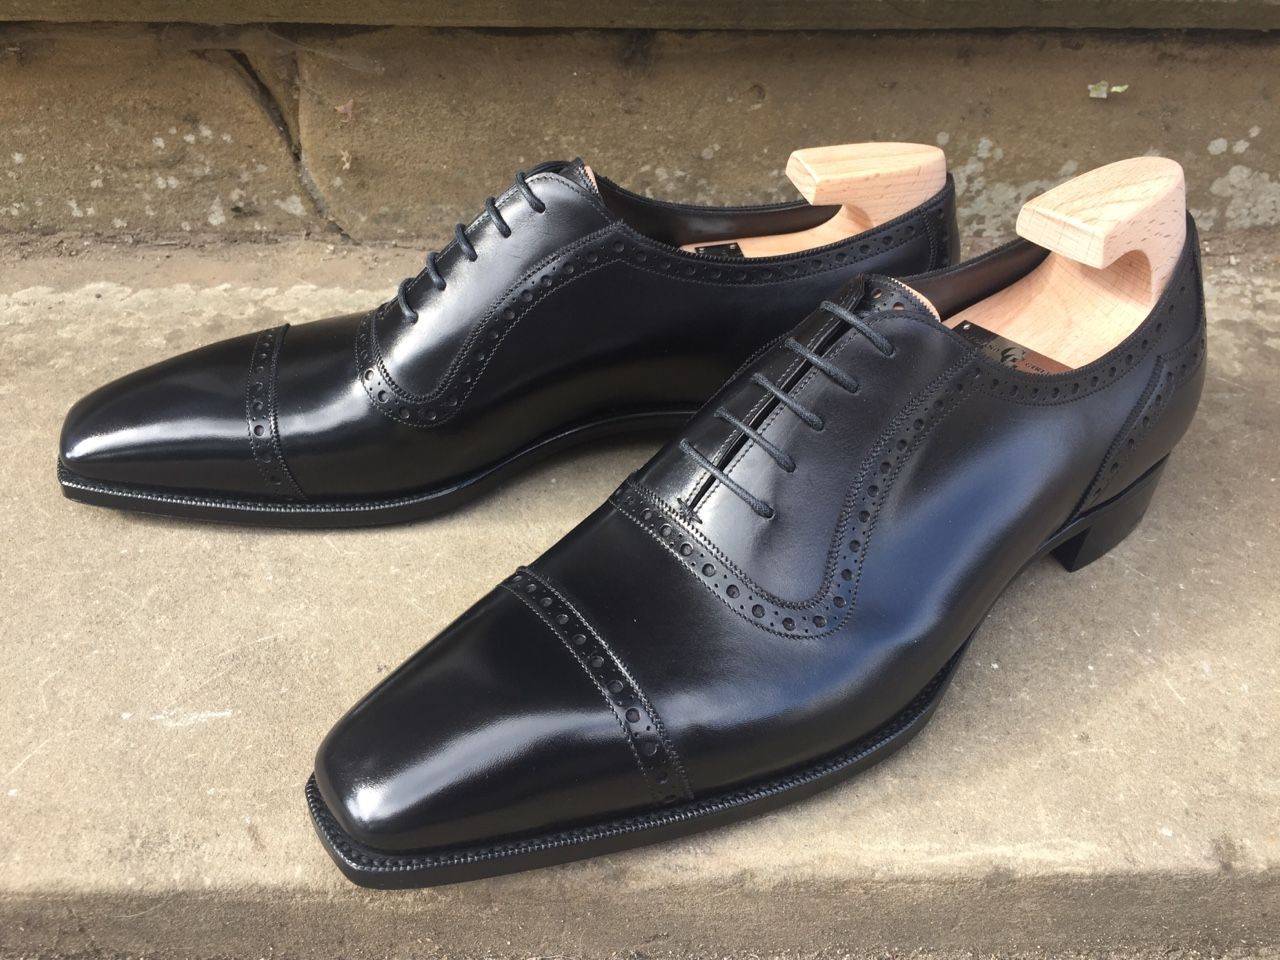 6ffa6c5735f Bespoke-England — St James II in Black Calf on the TG73. - These are ...